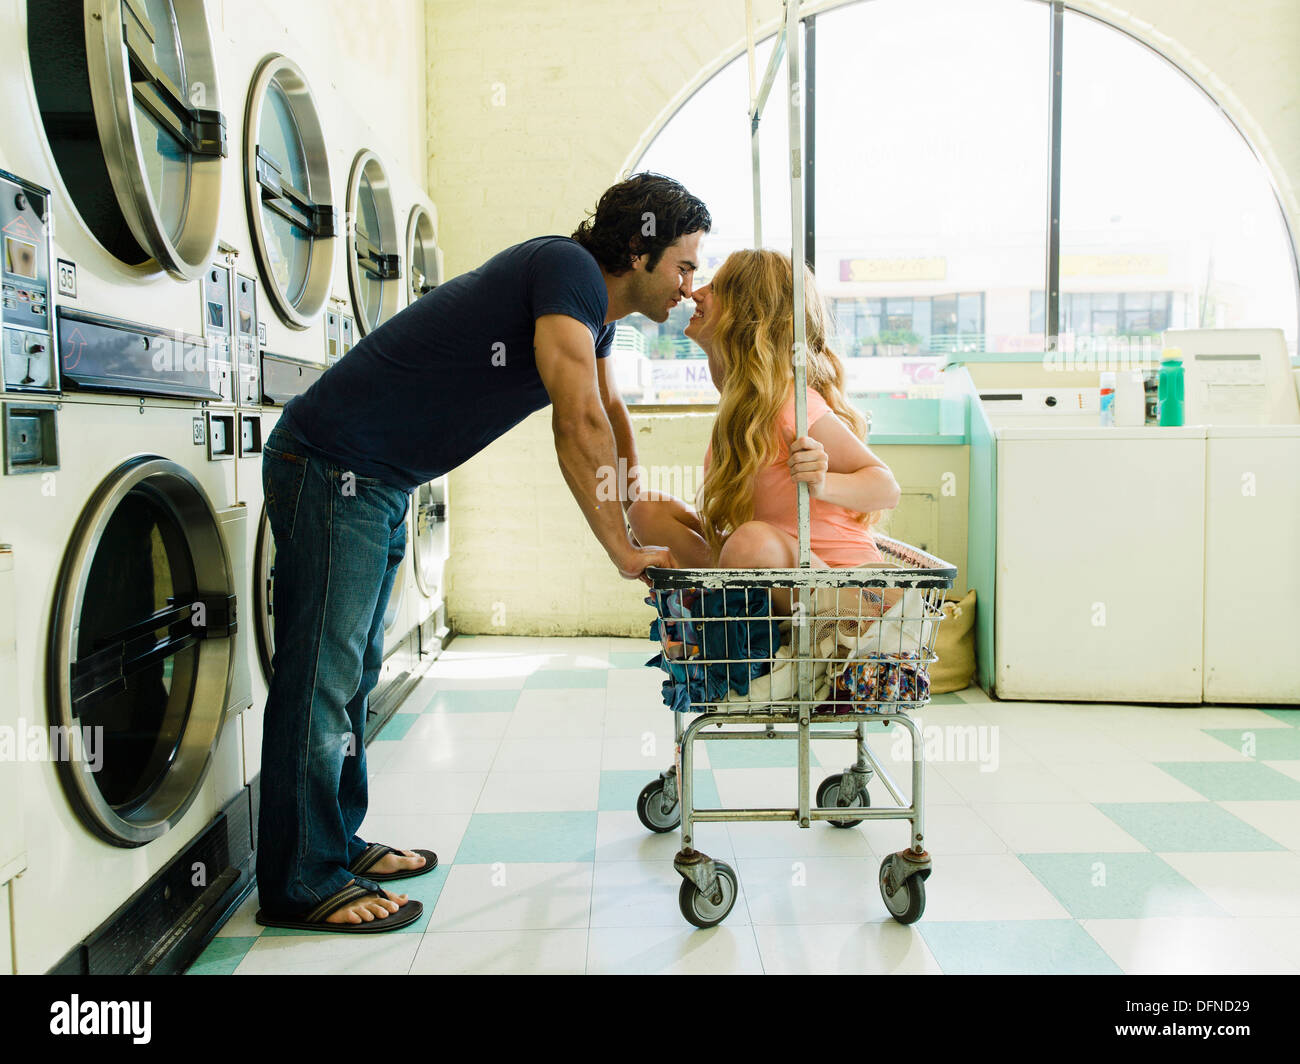 A young man leans over to feel the nose of a beautiful lady who sits on wheeled basket in San Diego coin laundromat. - Stock Image